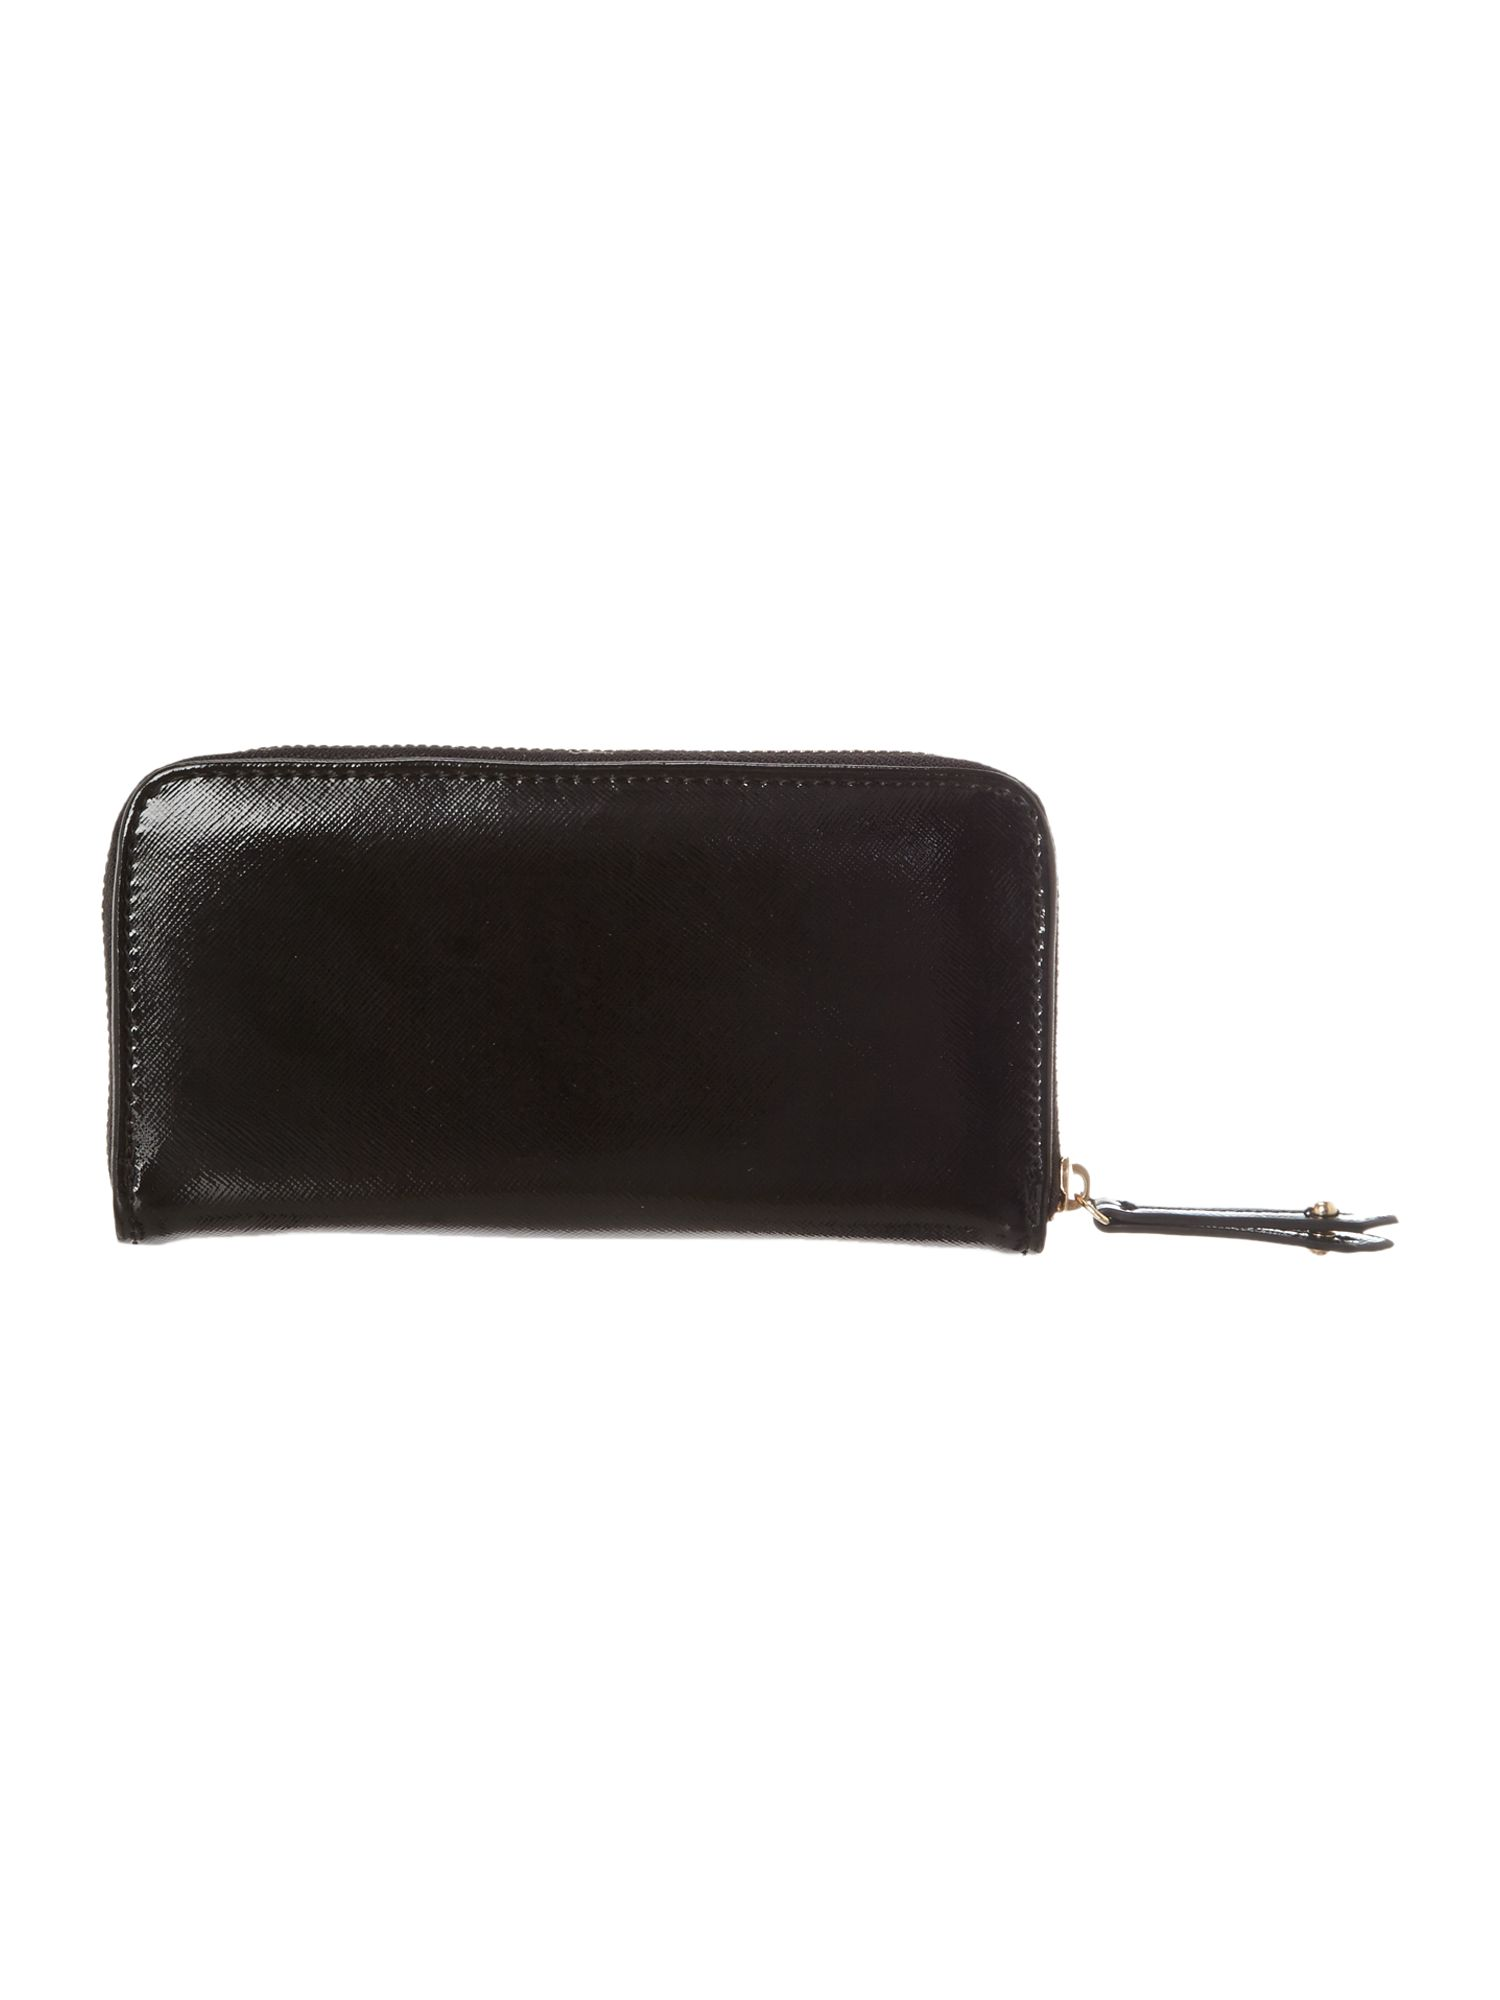 Black saffiano zip around purse